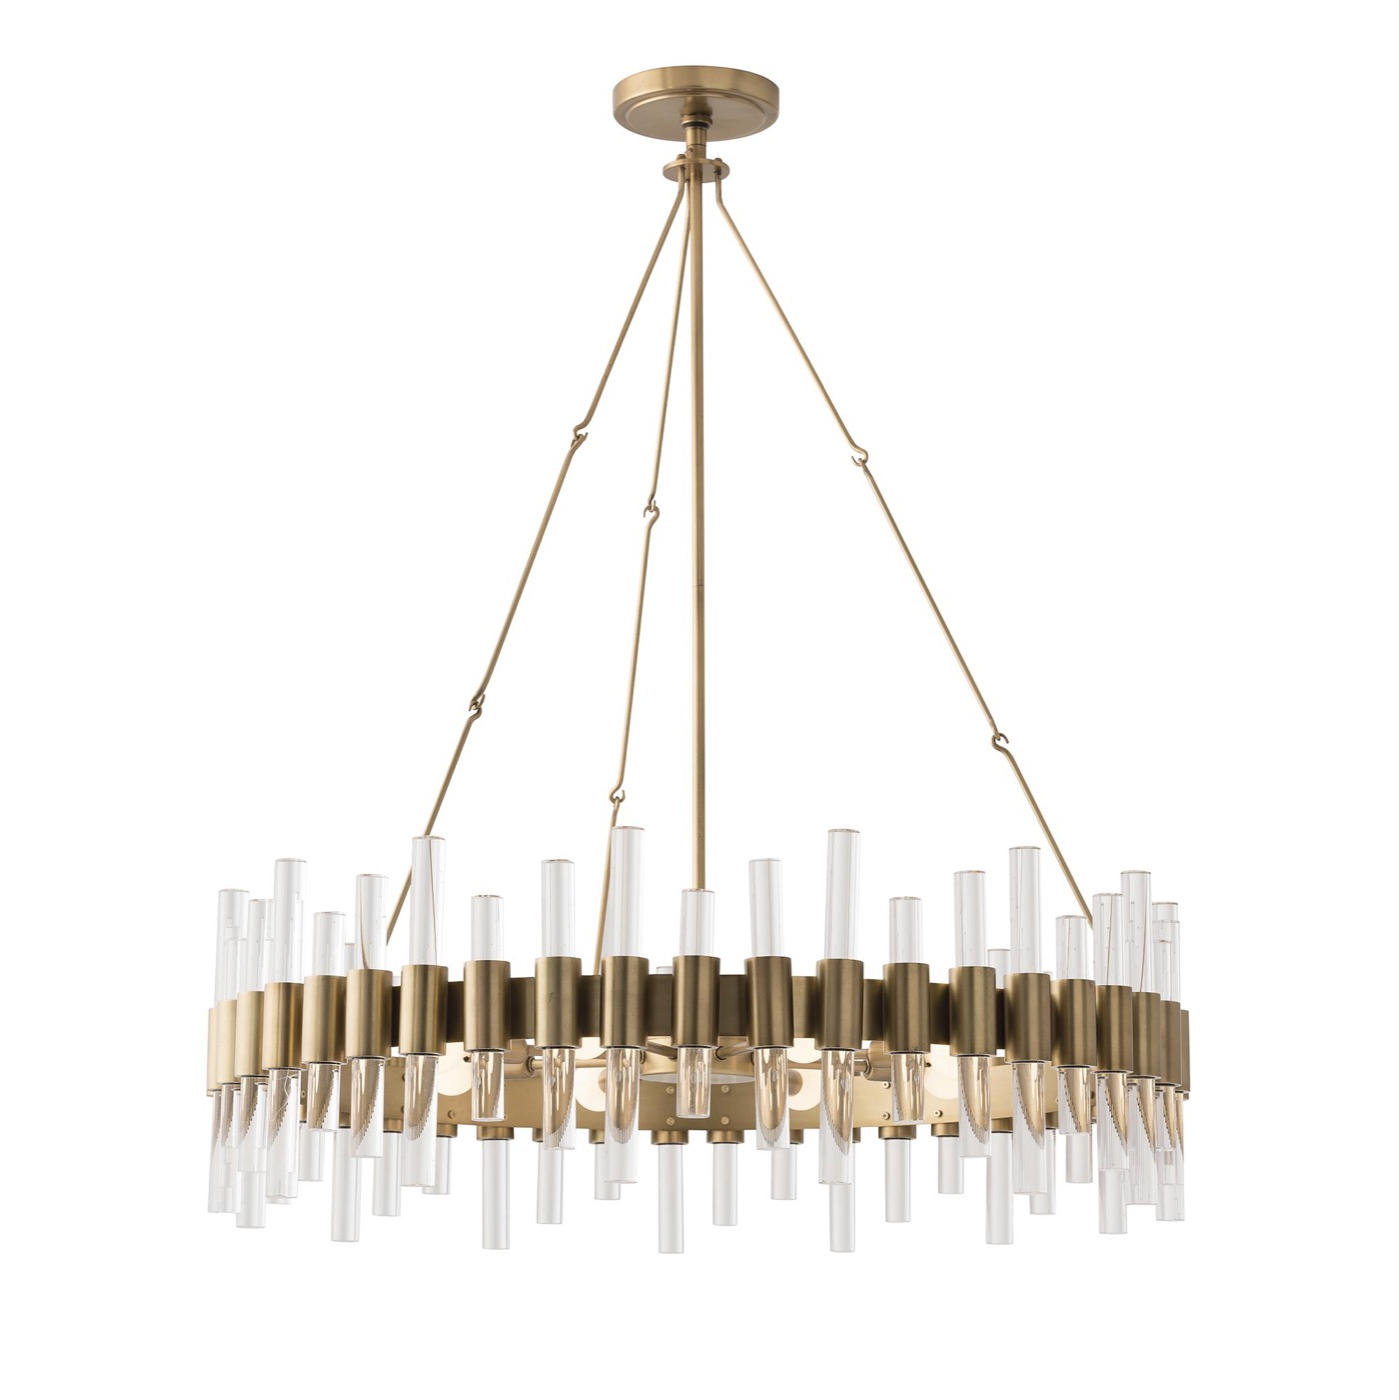 Miskell Brass & Lucite Grand Chandelier (View 20 of 20)